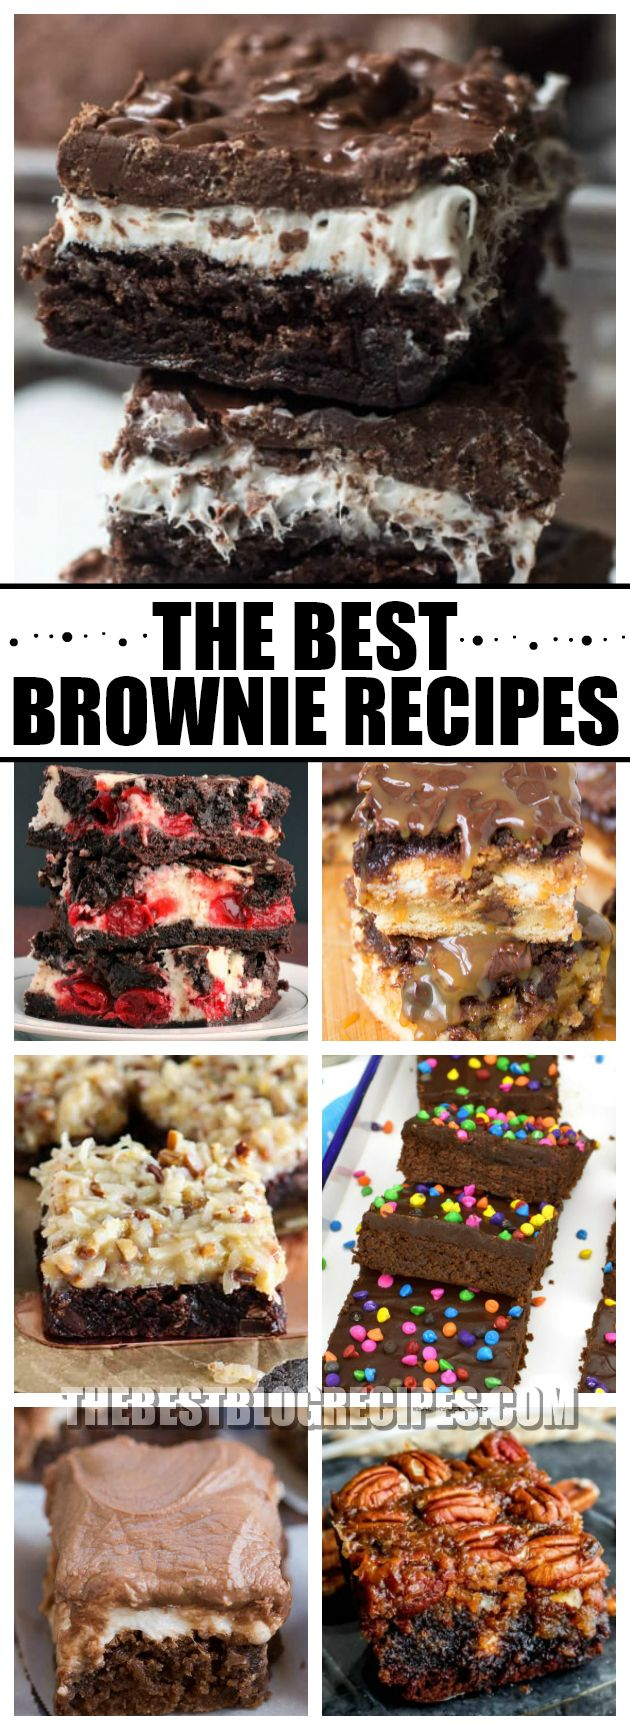 Who isn't obsessed with The Best Brownie Recipes for very Occasion? With so many twists on a classic favorite, this list has so many brownie treats that are absolutely to die for! via @bestblogrecipes